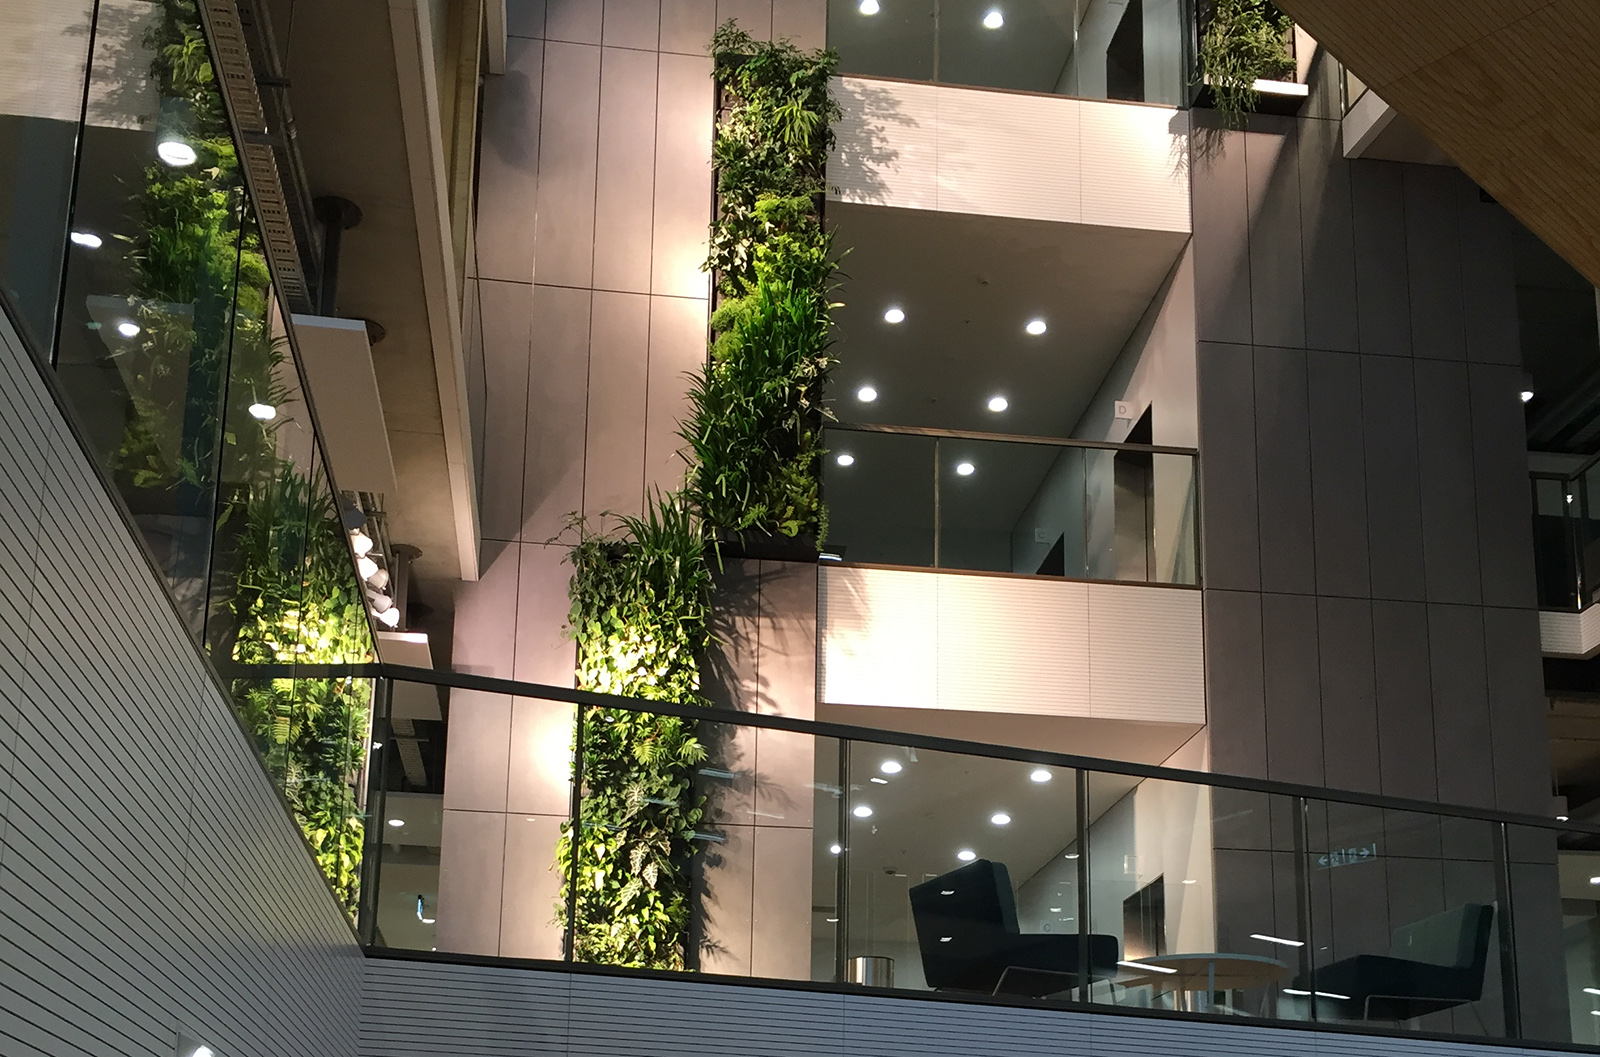 Bringing biodiversity to cities and offices